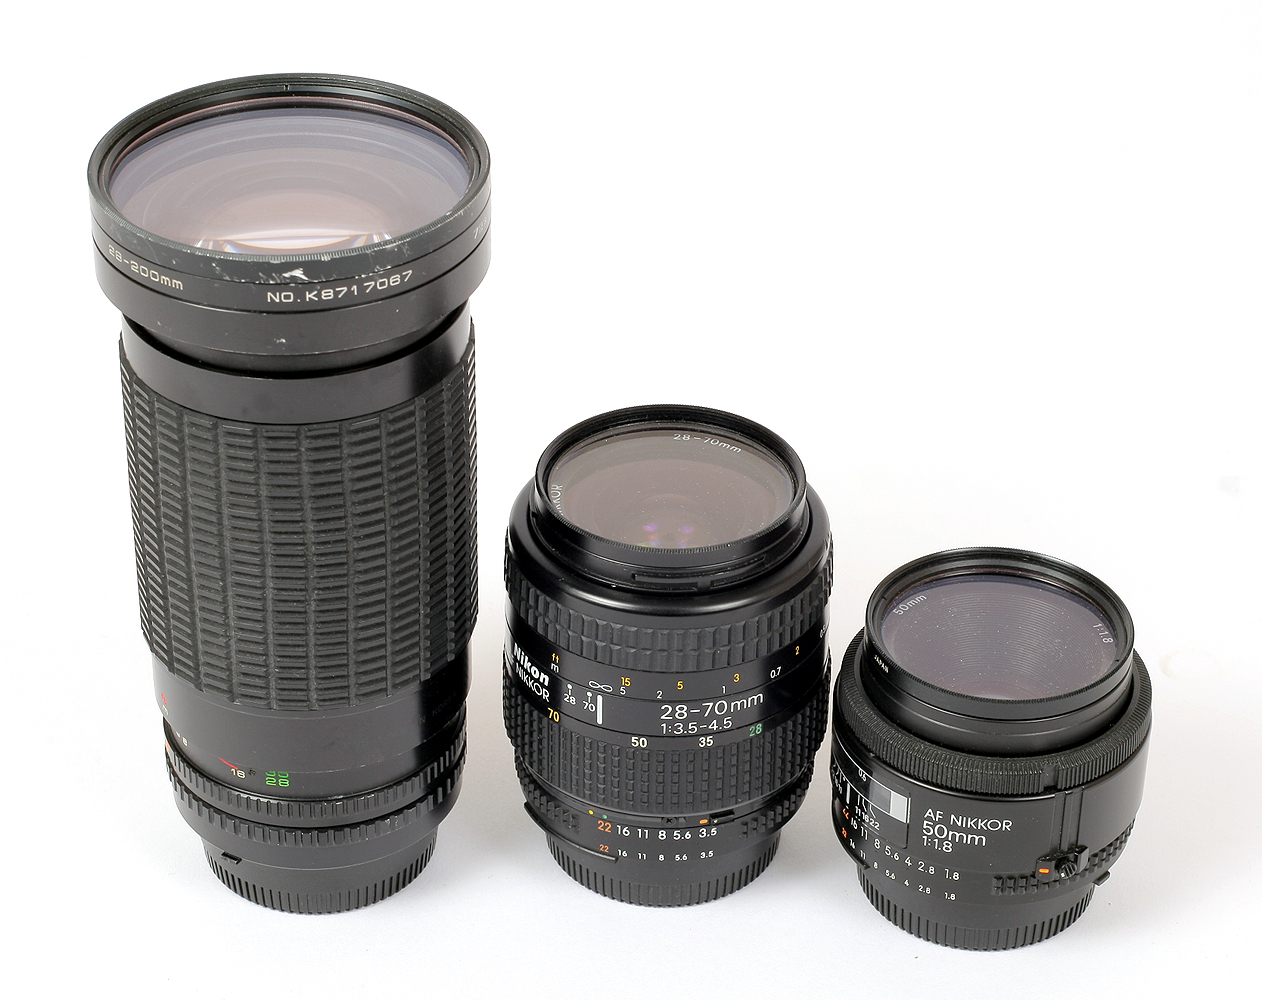 Lot 38 - Sigma 600mm (NOT 500mm) Mirror Lens & Other Nikon Fit Manual Focus Lenses.